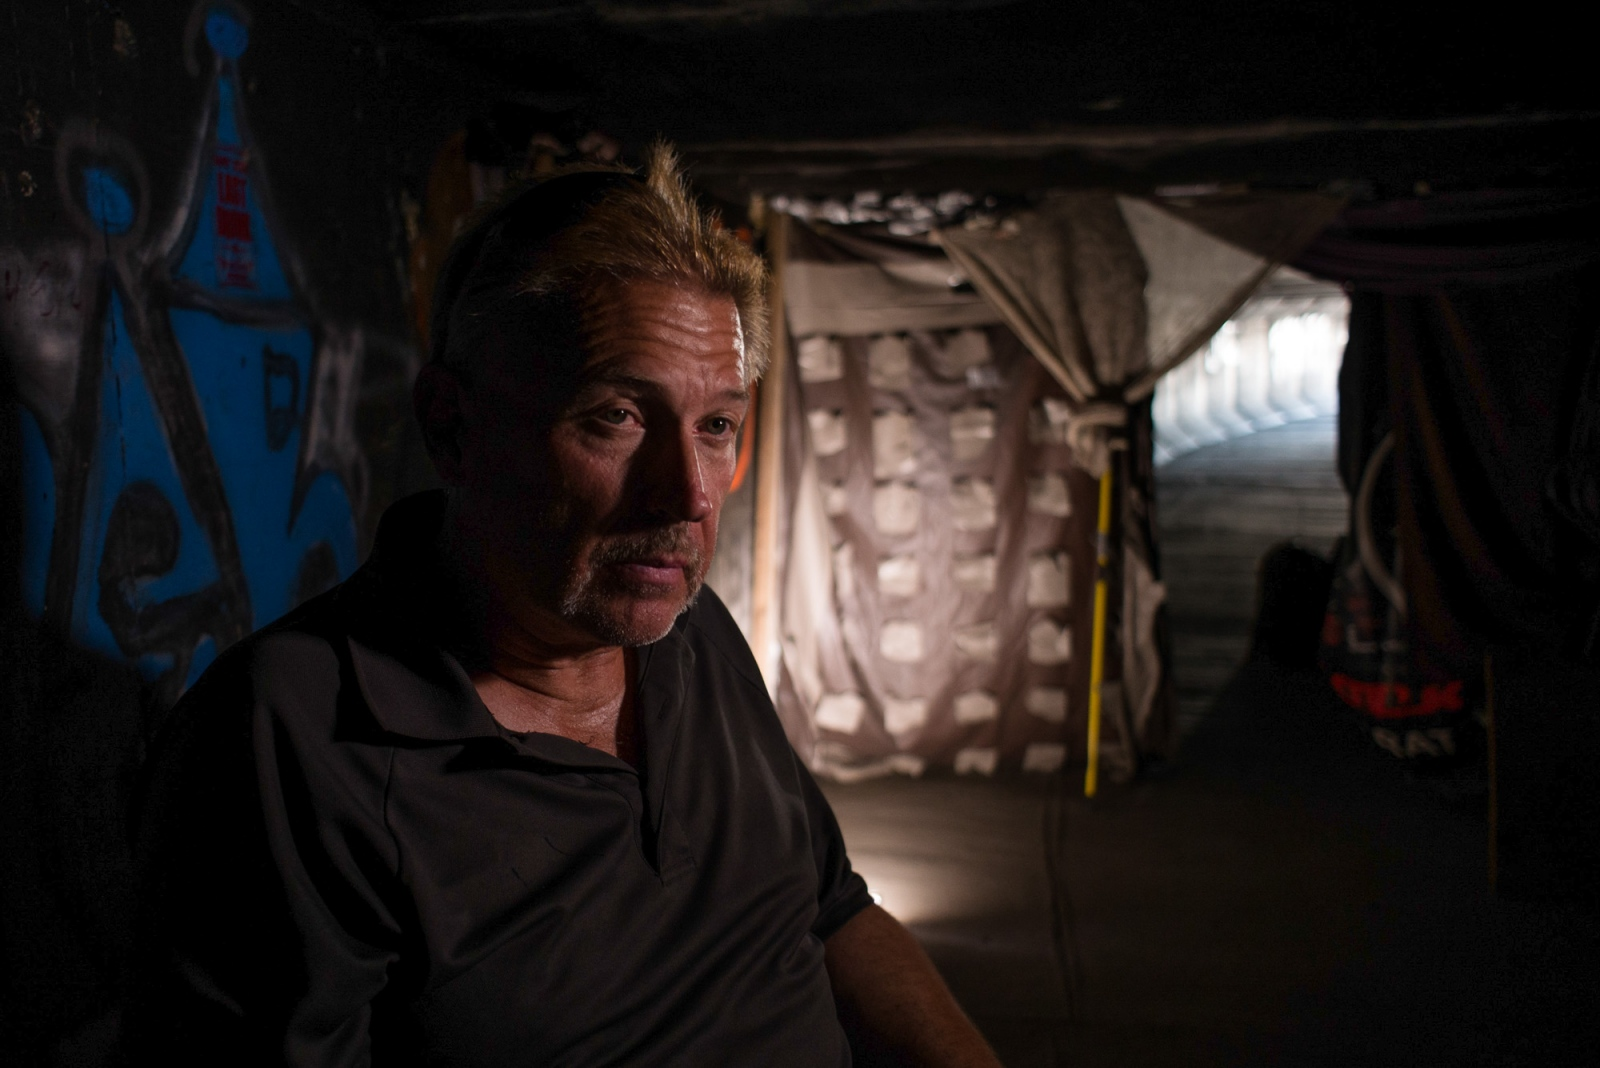 Skip has lived in the tunnels on and off for 4 years. For the past few weeks Skip has been above ground, driving an advertising billboard truck along the strip but complains he hasn't been paid in weeks.